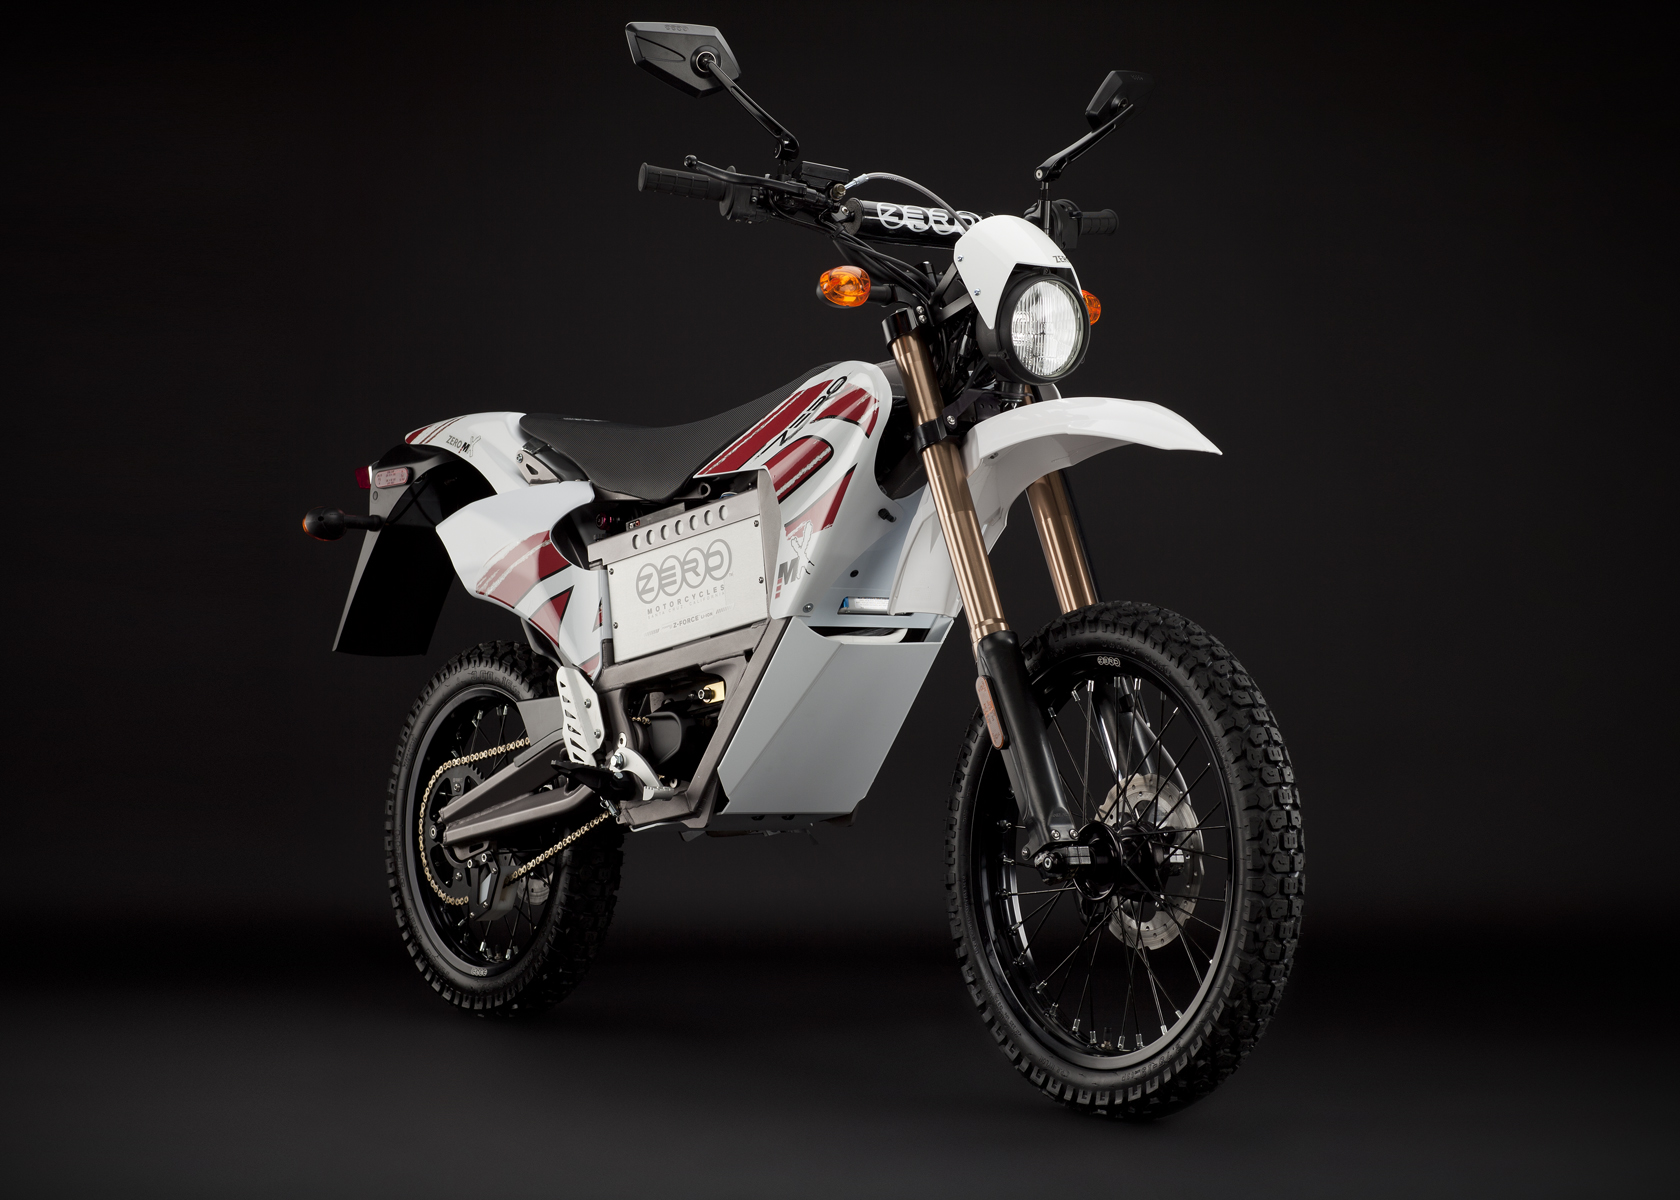 2011 Zero MX Electric Motorcycle: Right Angle, Street Legal Model